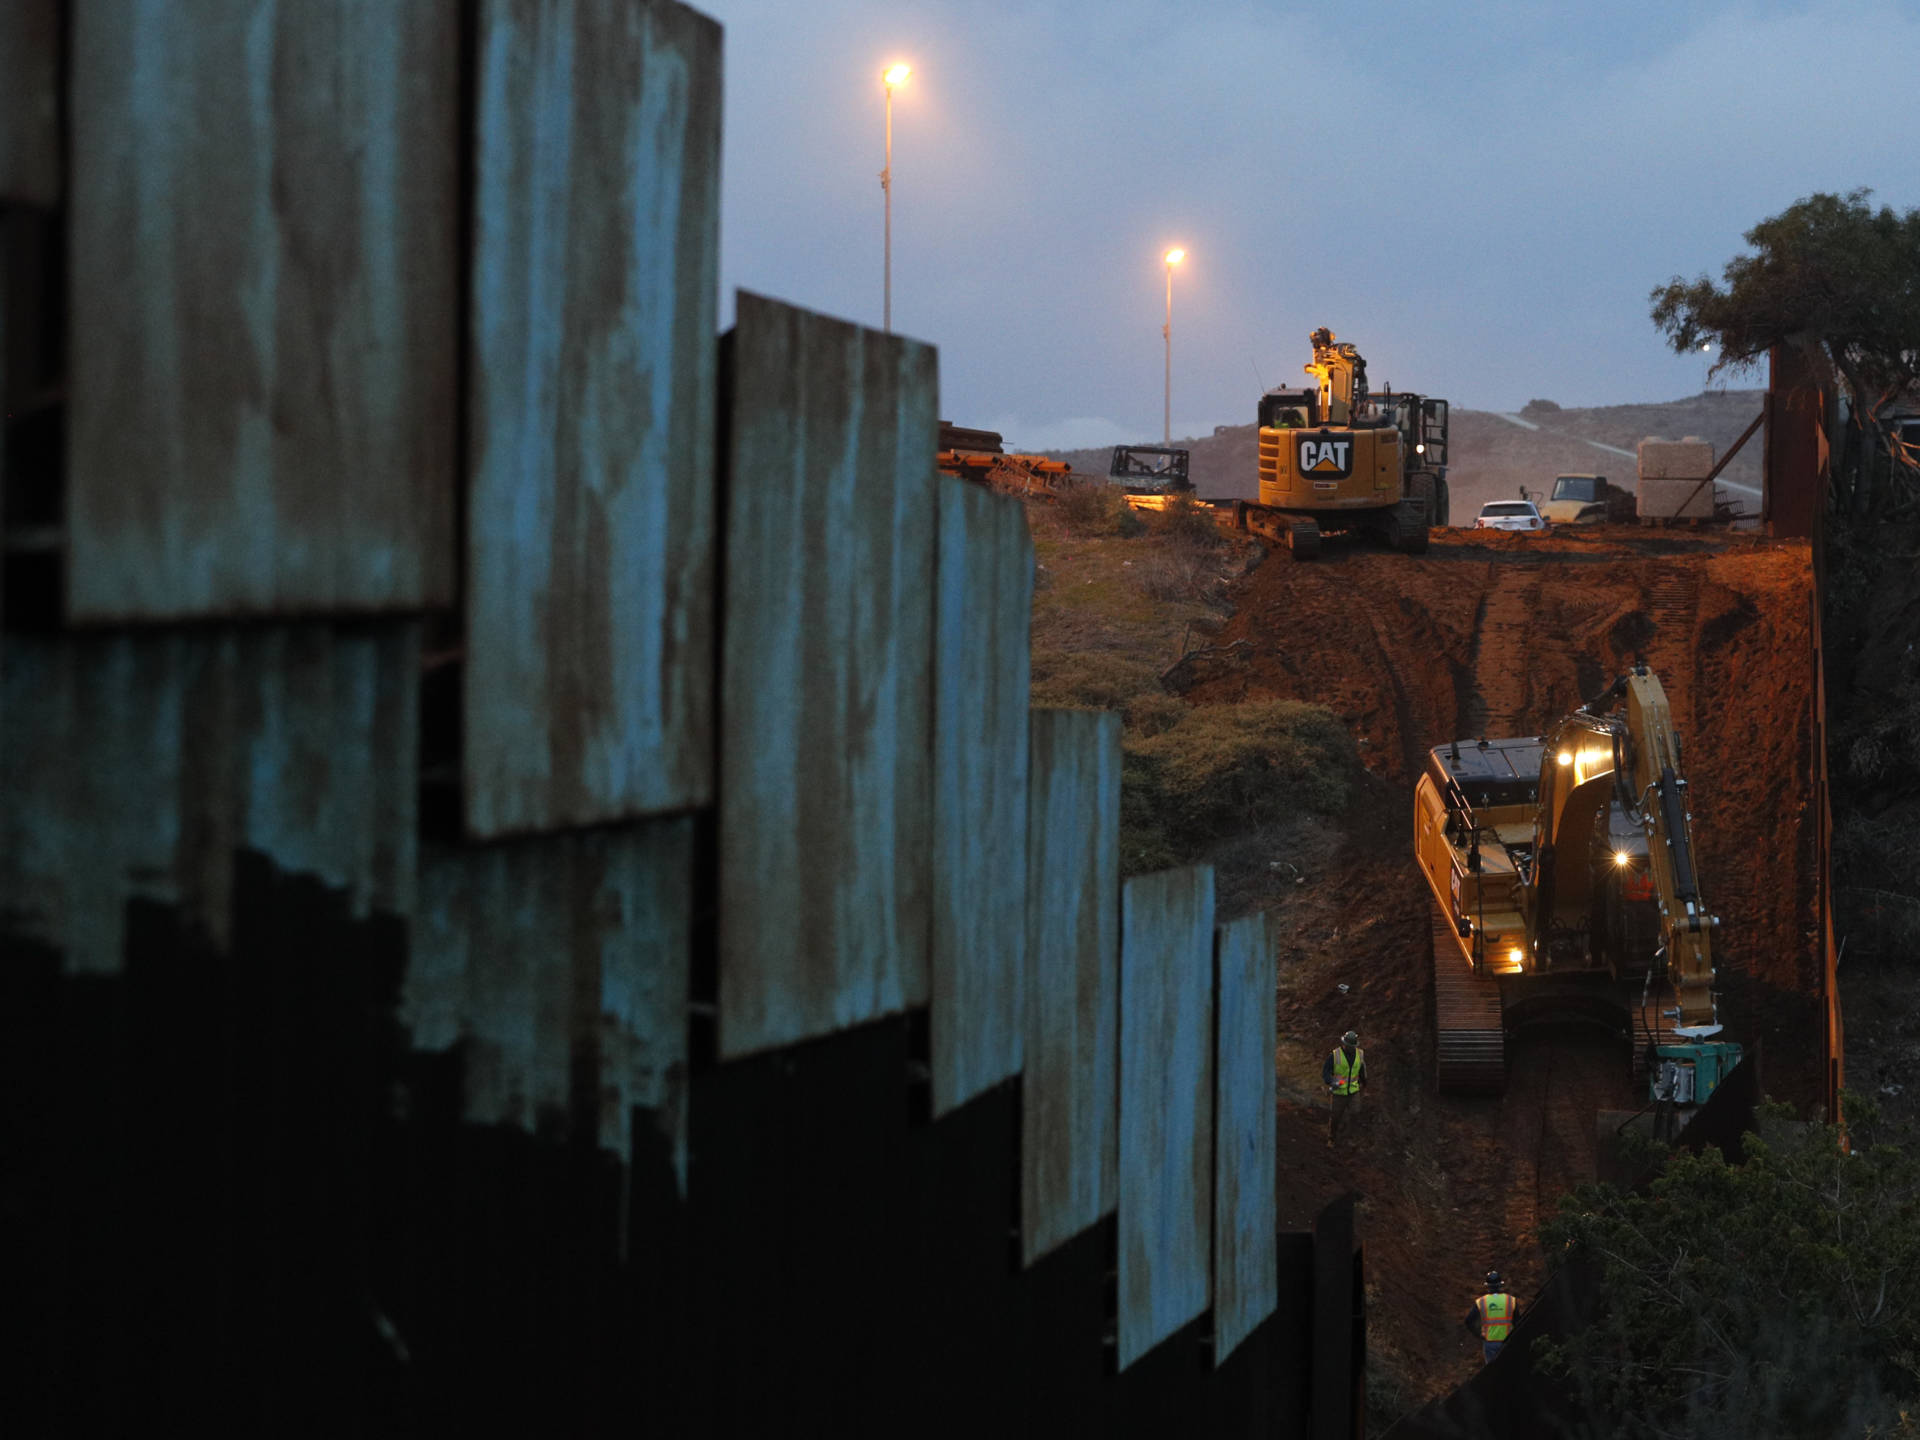 Contractors work to reinforce a section of the U.S. border wall in San Diego where scores of Central American migrants have crossed illegally in recent weeks, photographed through the fence from Tijuana, Mexico. Rebecca Blackwell/AP